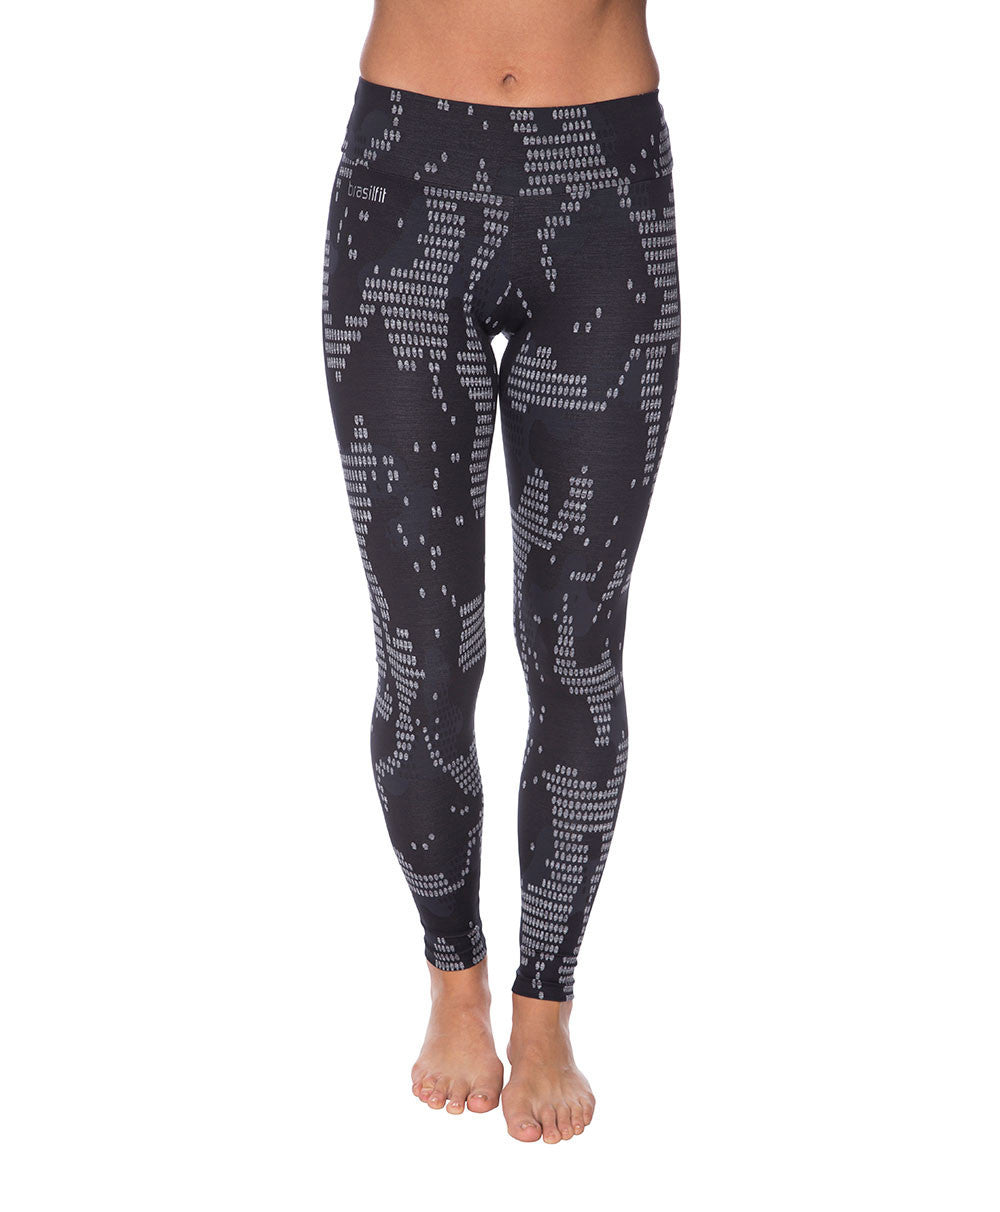 Side view product image for Brasilfit Bangkok Full Length activewear leggings.  Bangkok leggings are part of our textured activewear legging collection that is focused on performance, high compression activewear.